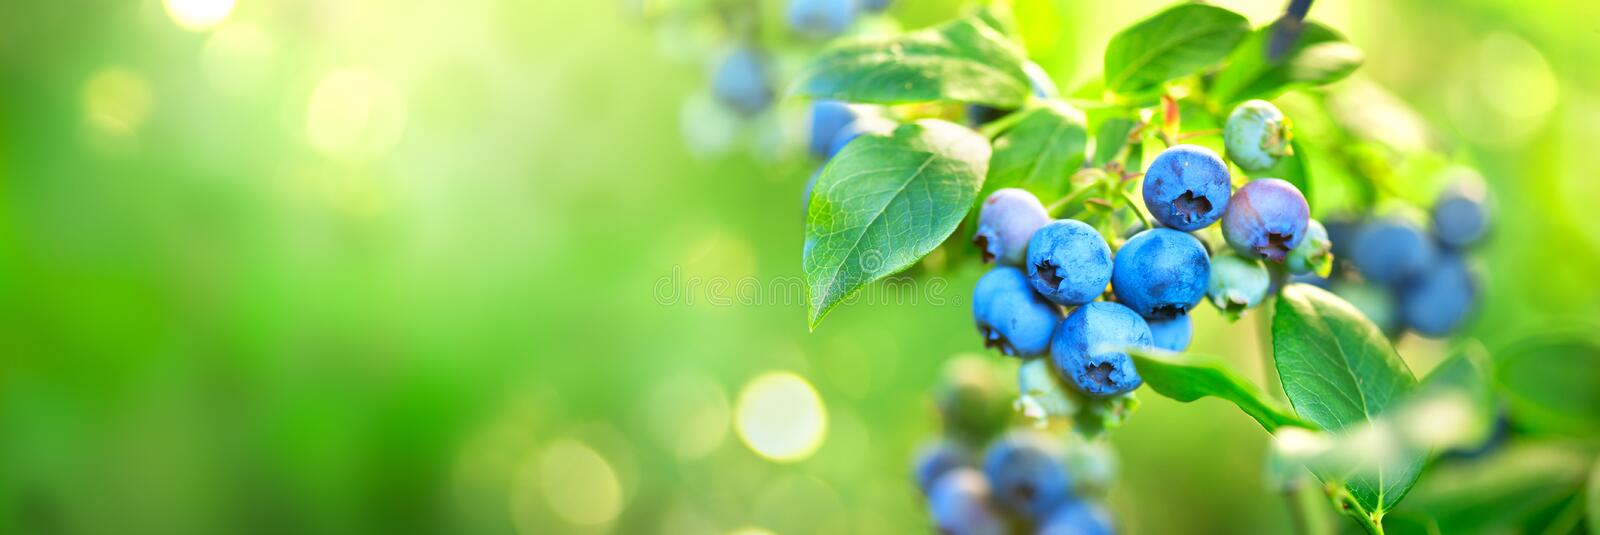 Blueberry plant. Fresh and ripe organic Blueberries growing in a garden. Healthy food. Agriculture. Wide screen stock photography